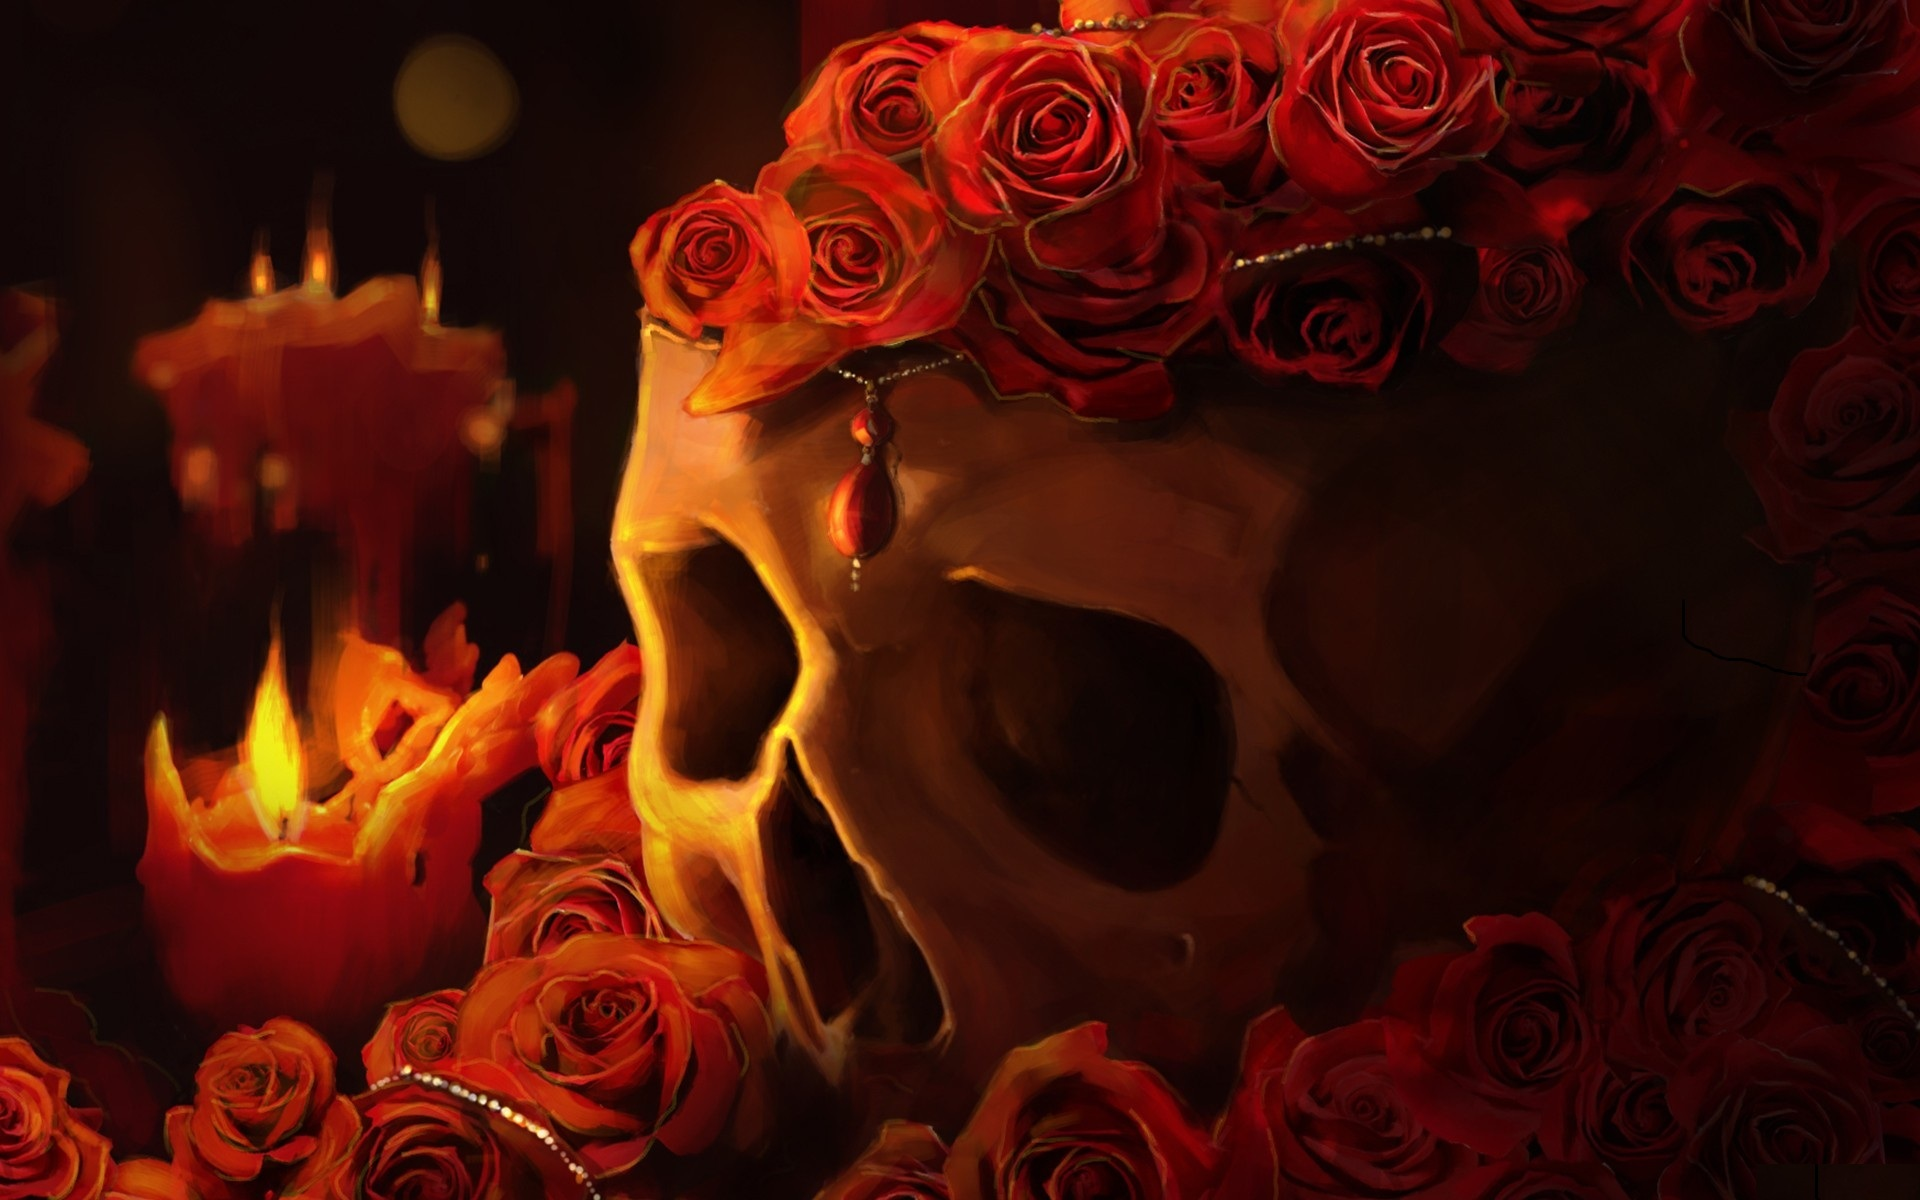 Skull pendants red rose flowers candles fire flame wallpapers 1920x1200